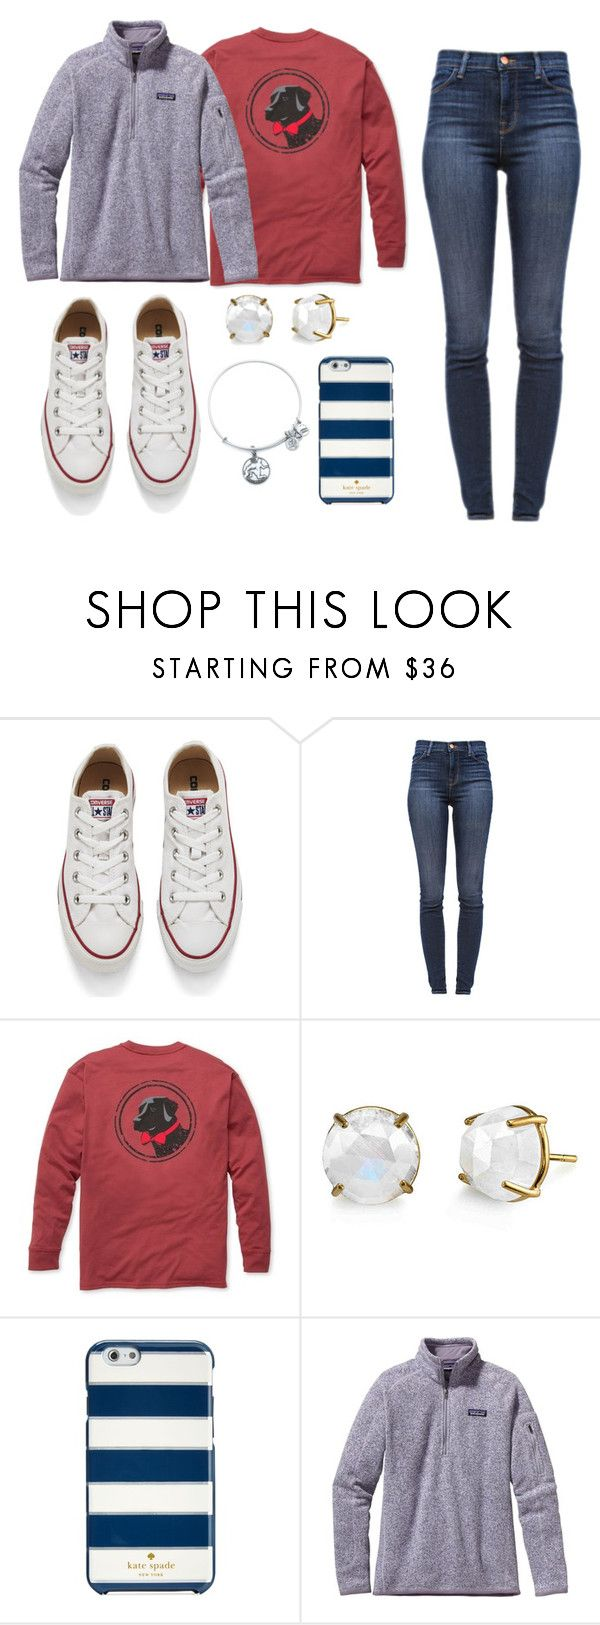 """""""Fall Day"""" by niamhbrid on Polyvore featuring Converse, J Brand, Southern Proper, Kate Spade, Patagonia, Alex and Ani, women's clothing, women, female and woman"""